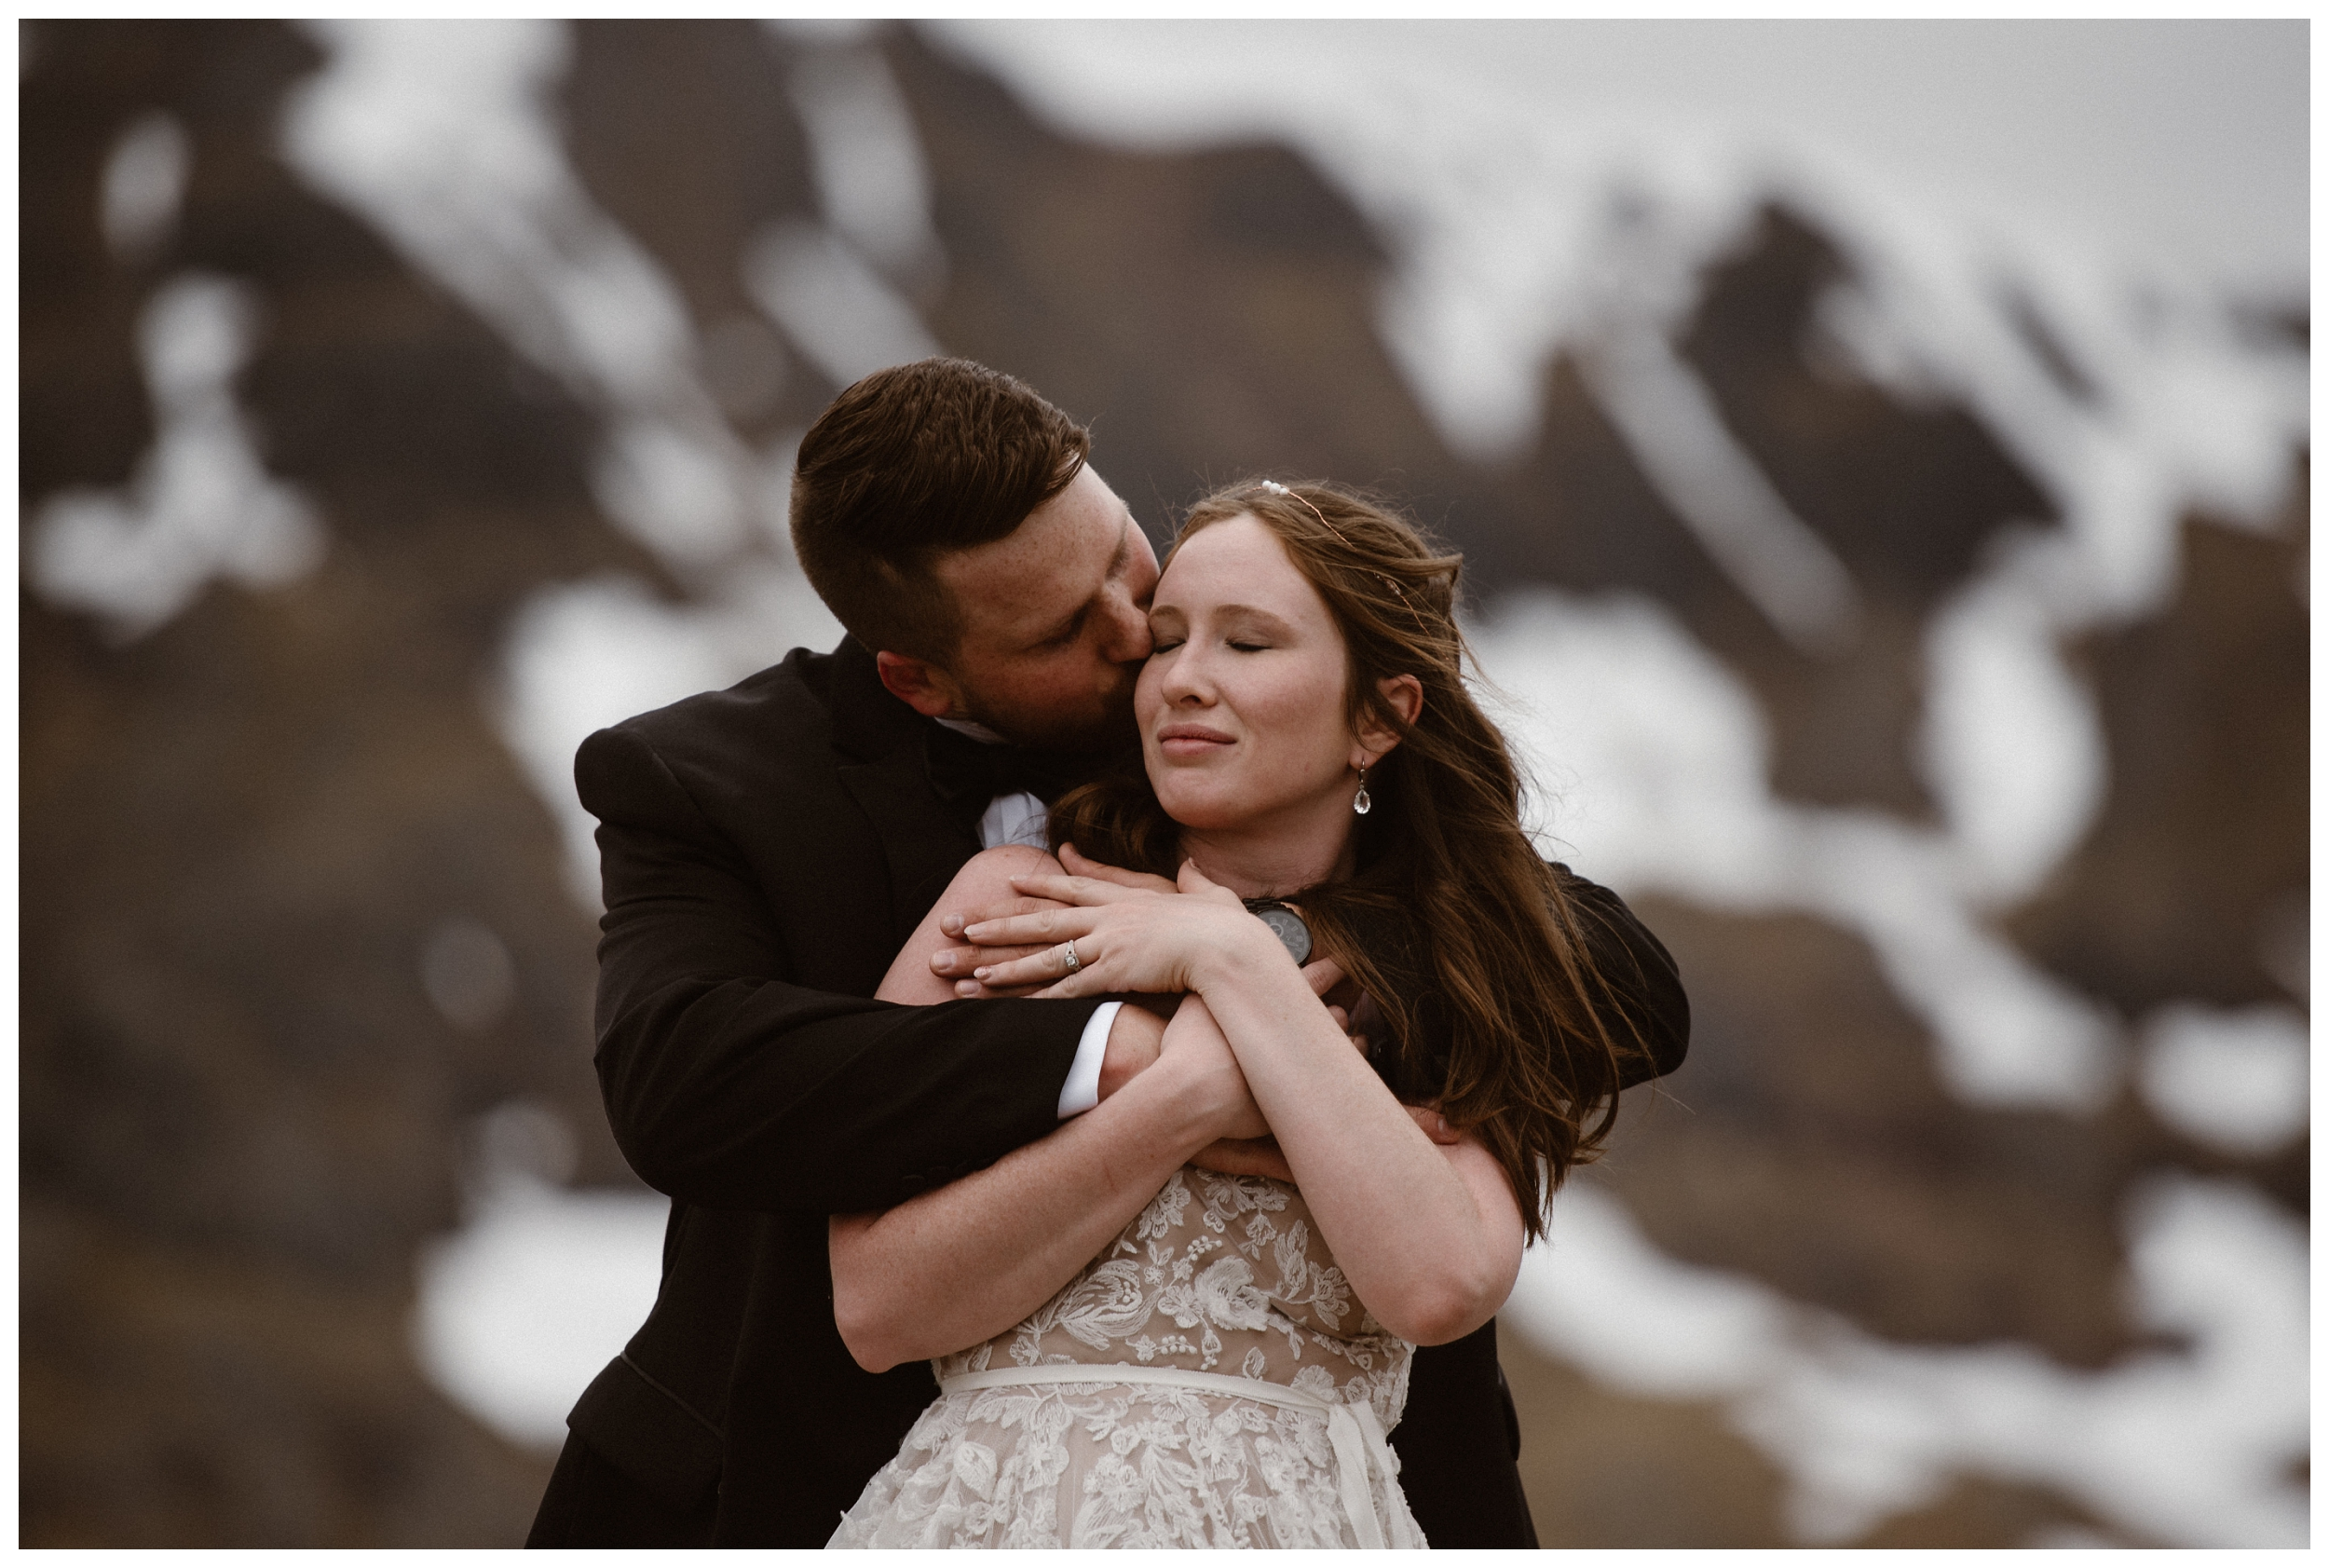 Elissa and Daniel chose to road trip around the Scottish Highlands for their destination elopement so they could experience something new together on their wedding day. Photo by Maddie Mae, Adventure Instead.